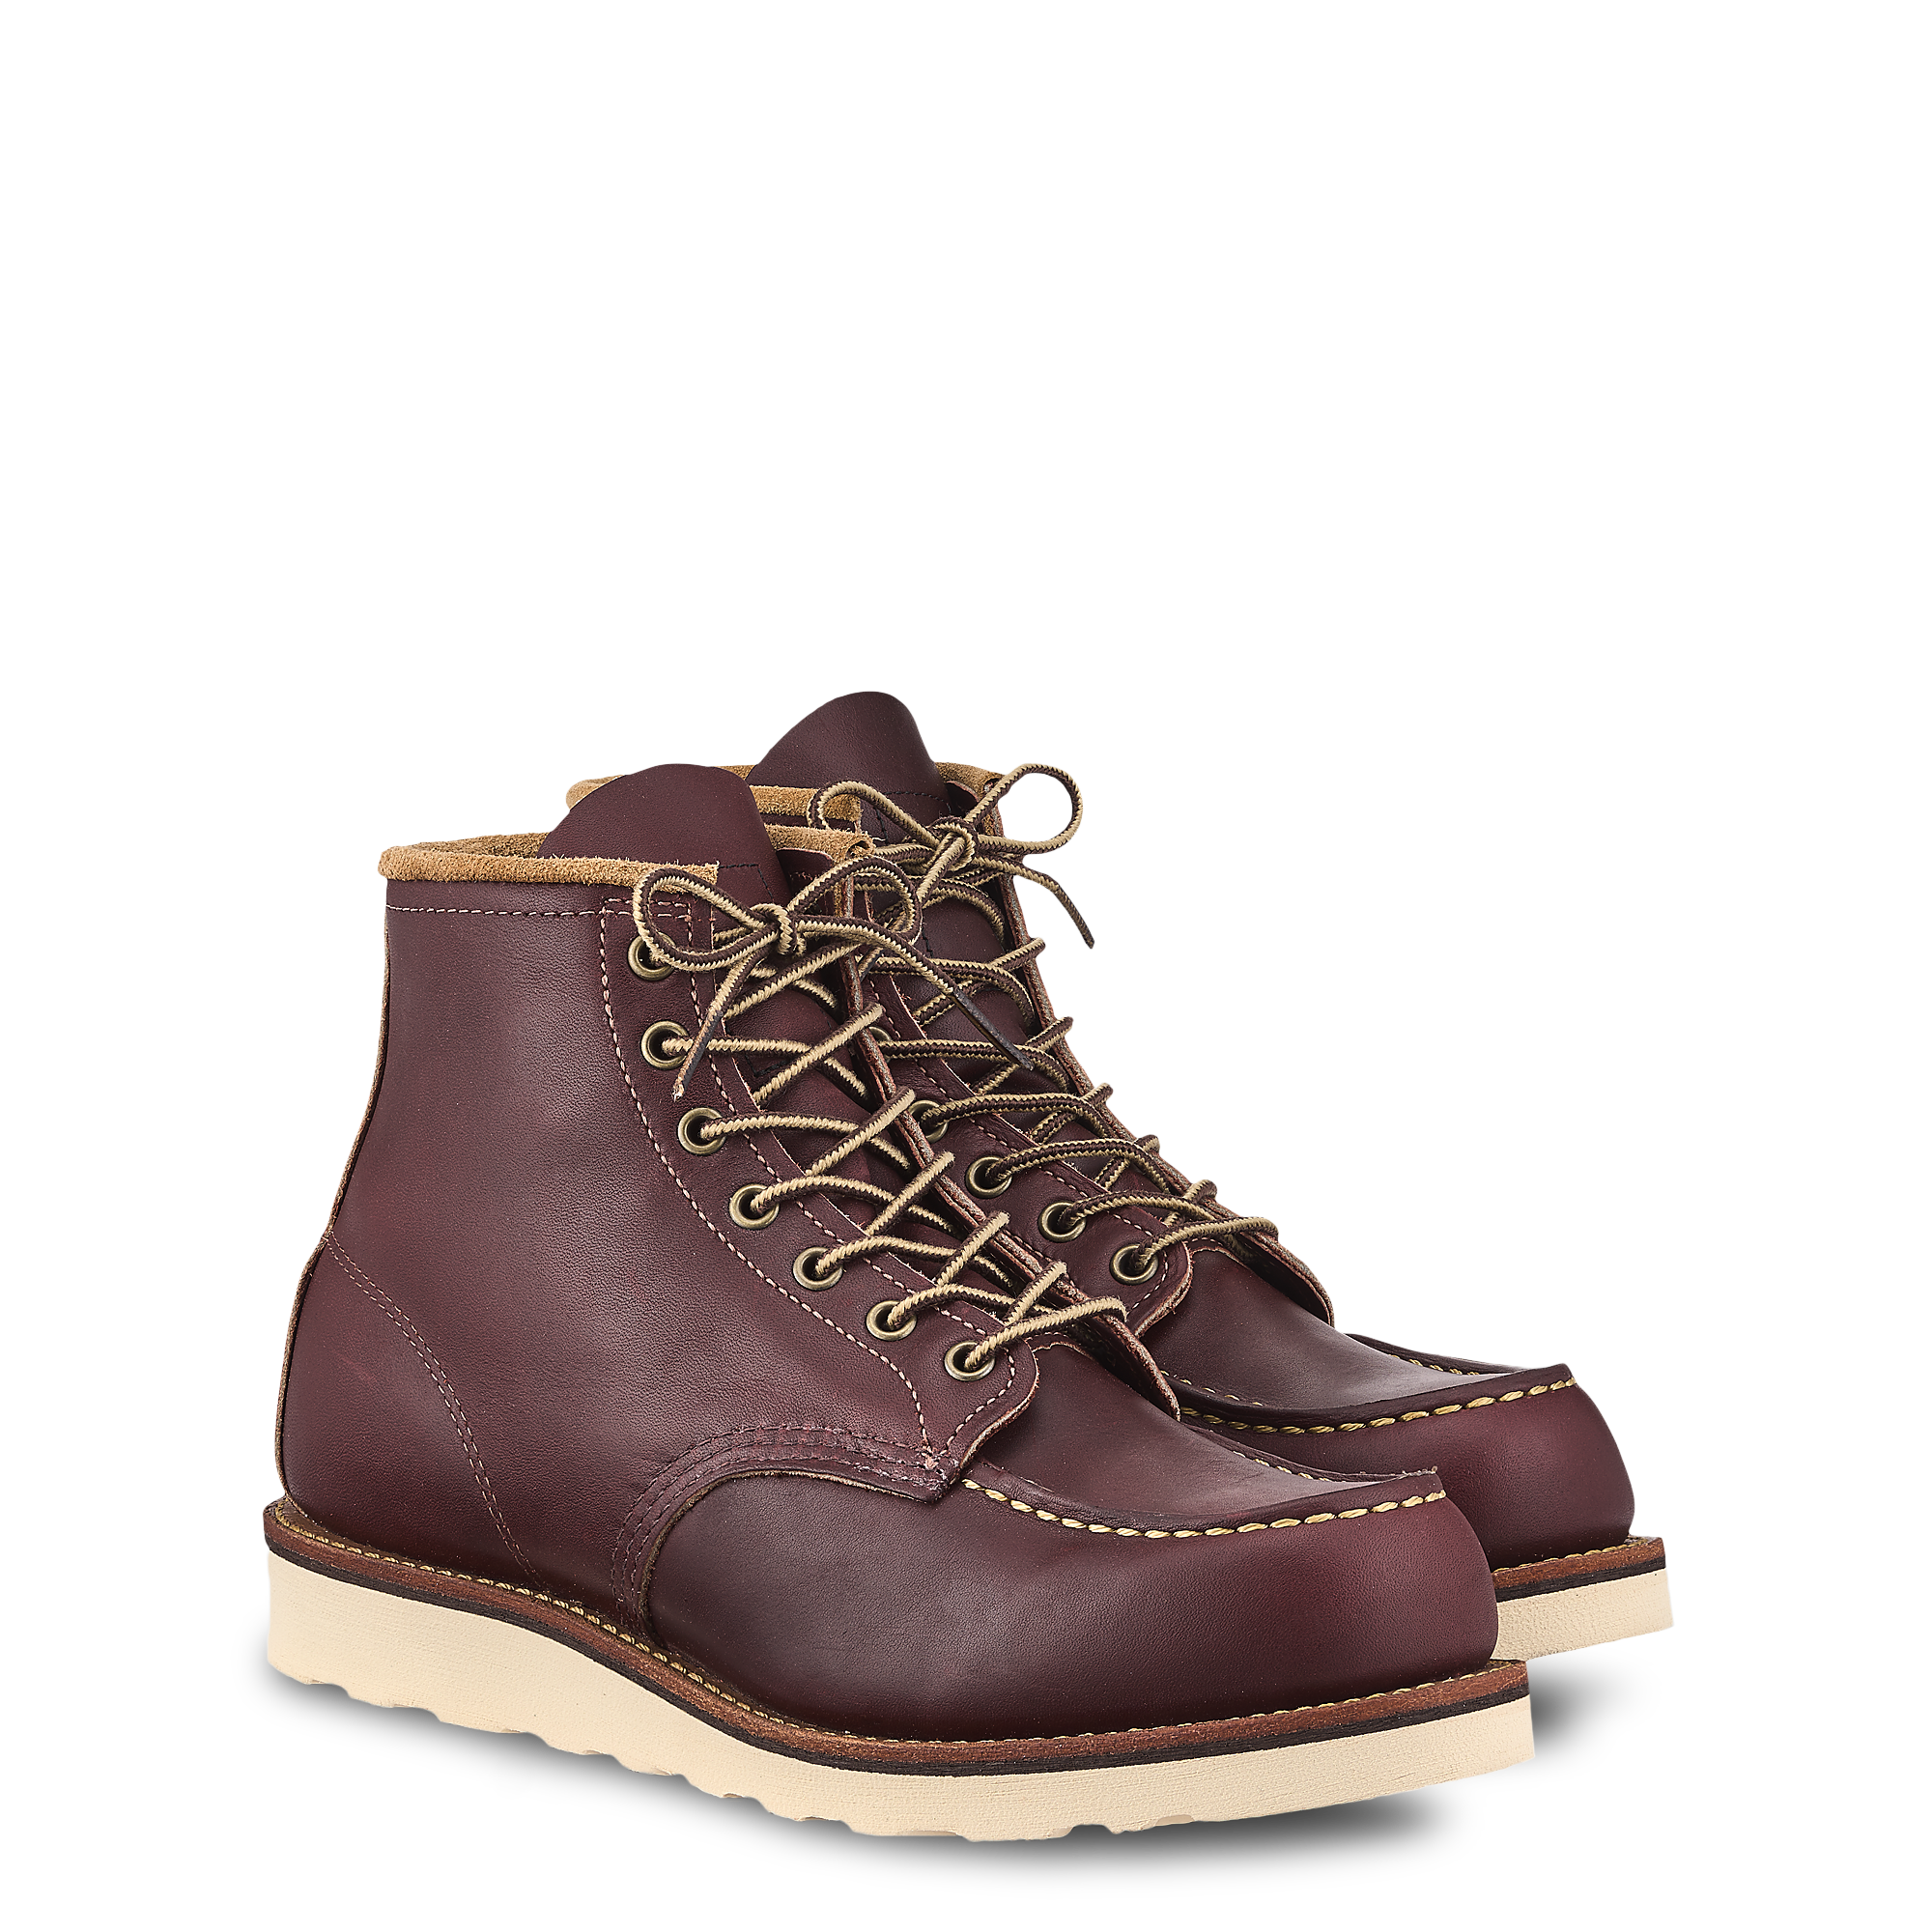 oxblood red wings